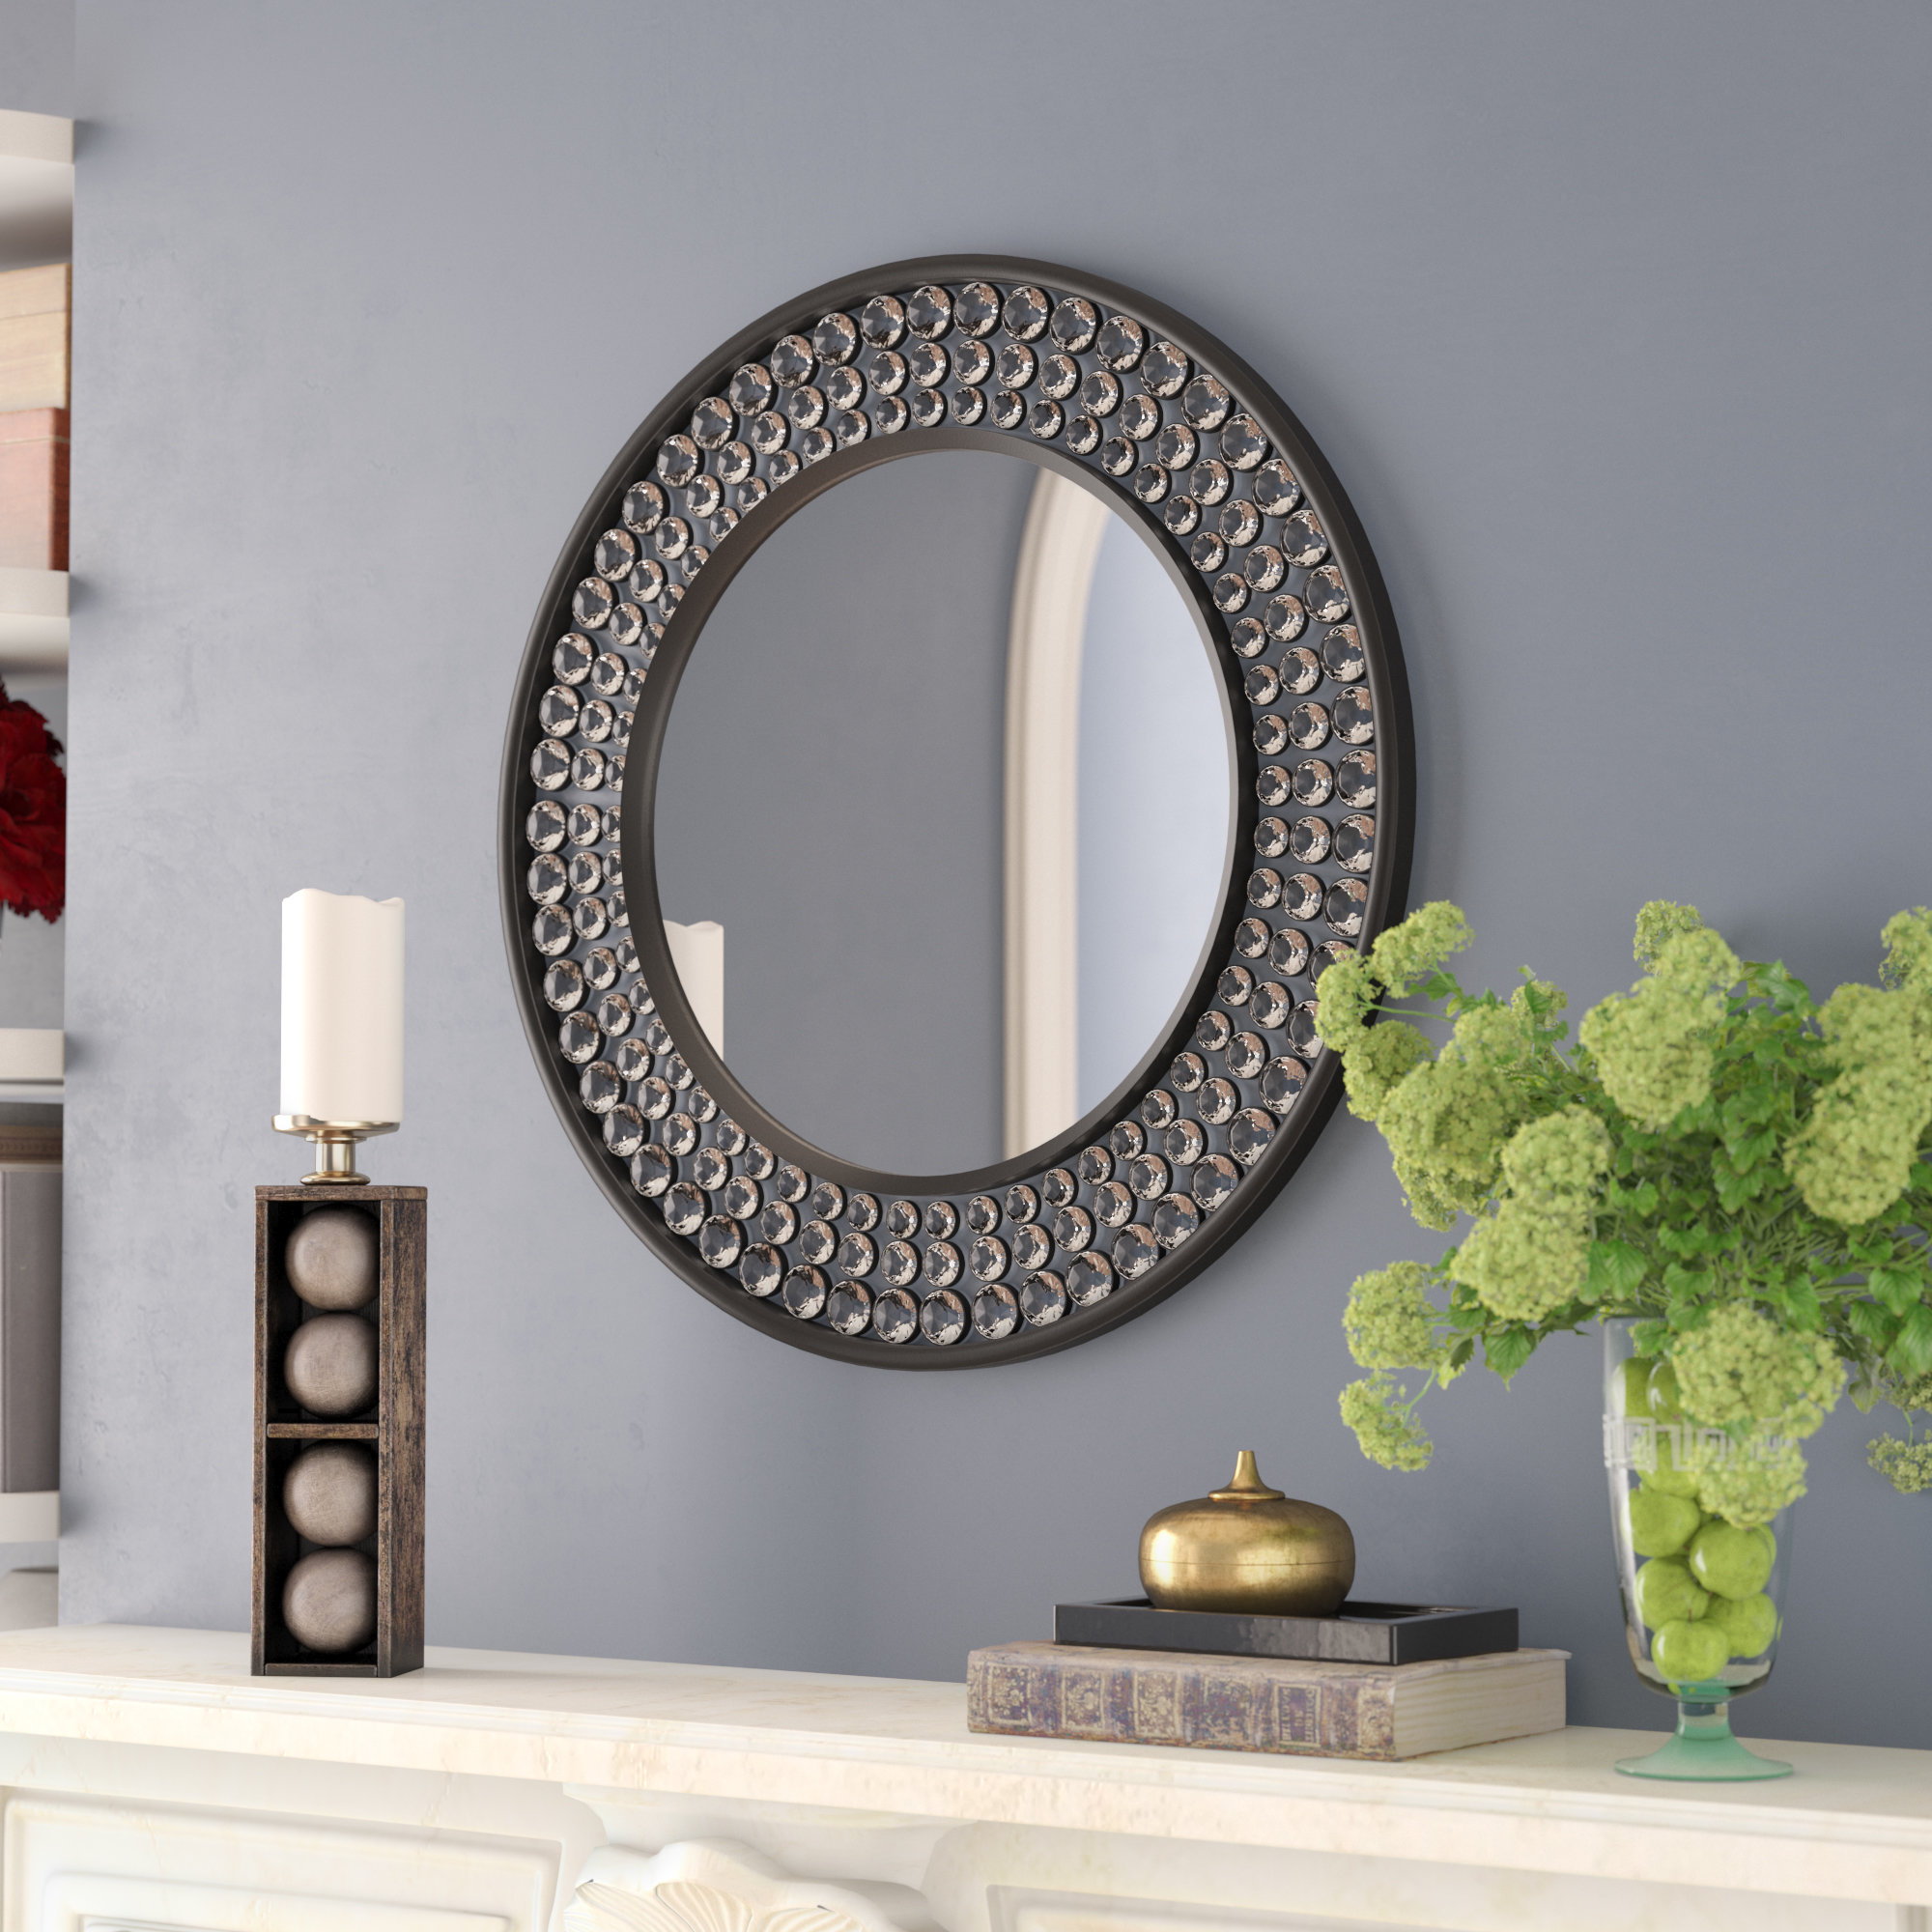 Valerian Jeweled Round Wall Mirror Throughout Point Reyes Molten Round Wall Mirrors (Image 19 of 20)